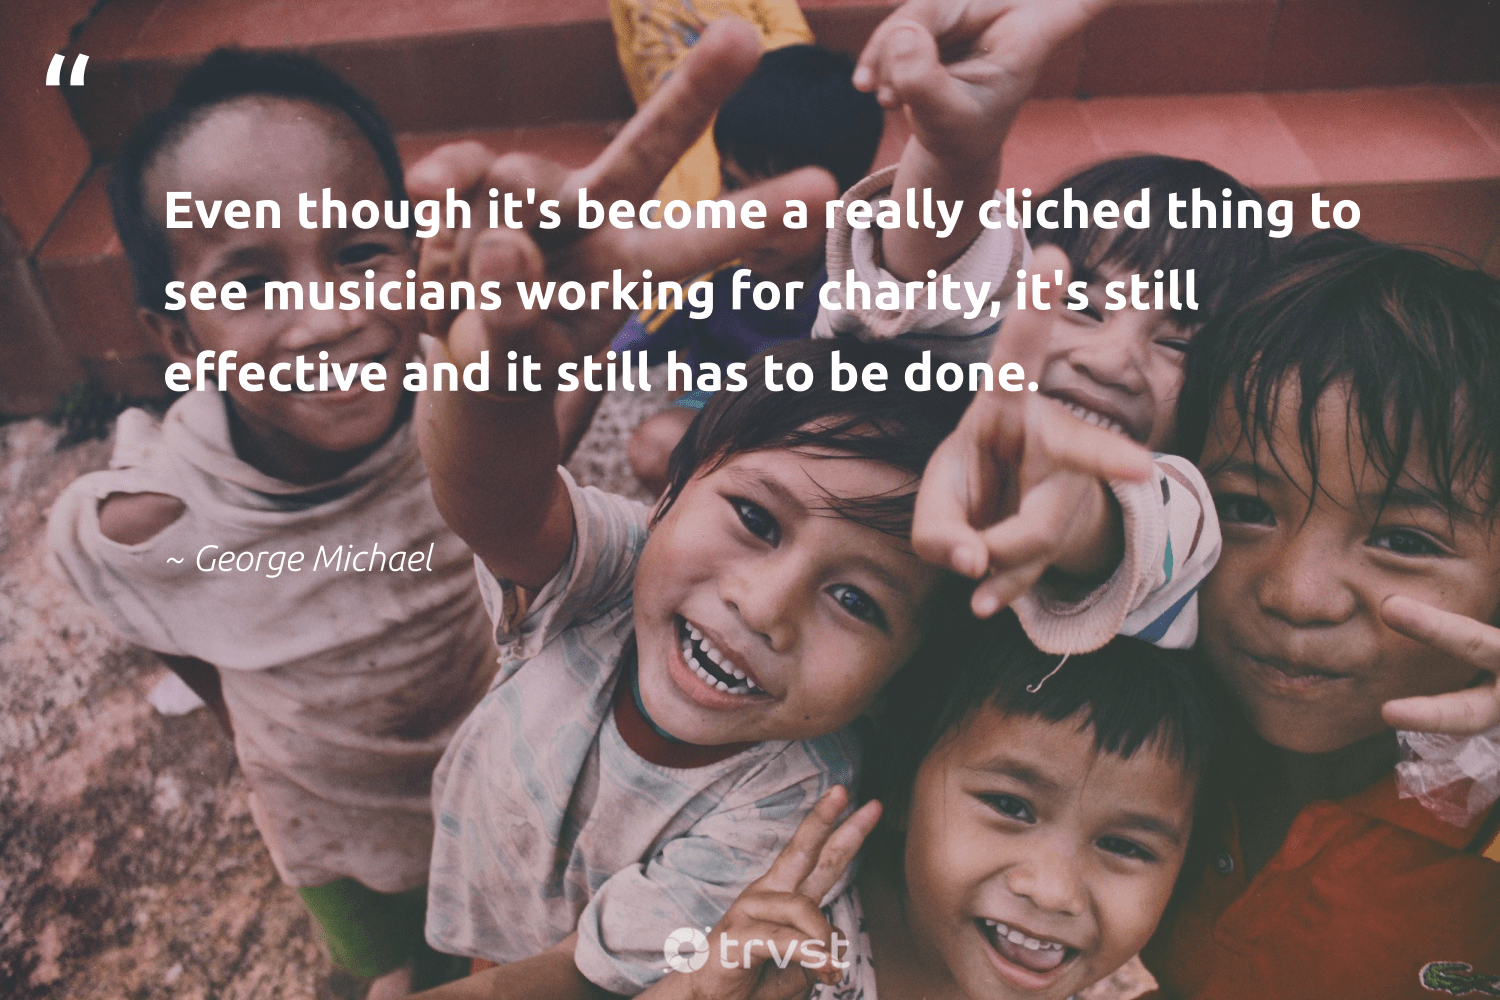 """""""Even though it's become a really cliched thing to see musicians working for charity, it's still effective and it still has to be done.""""  - George Michael #trvst #quotes #society #dosomething #dogood #bethechange #weareallone #beinspired #workingtogether #thinkgreen #socialchange #ecoconscious"""